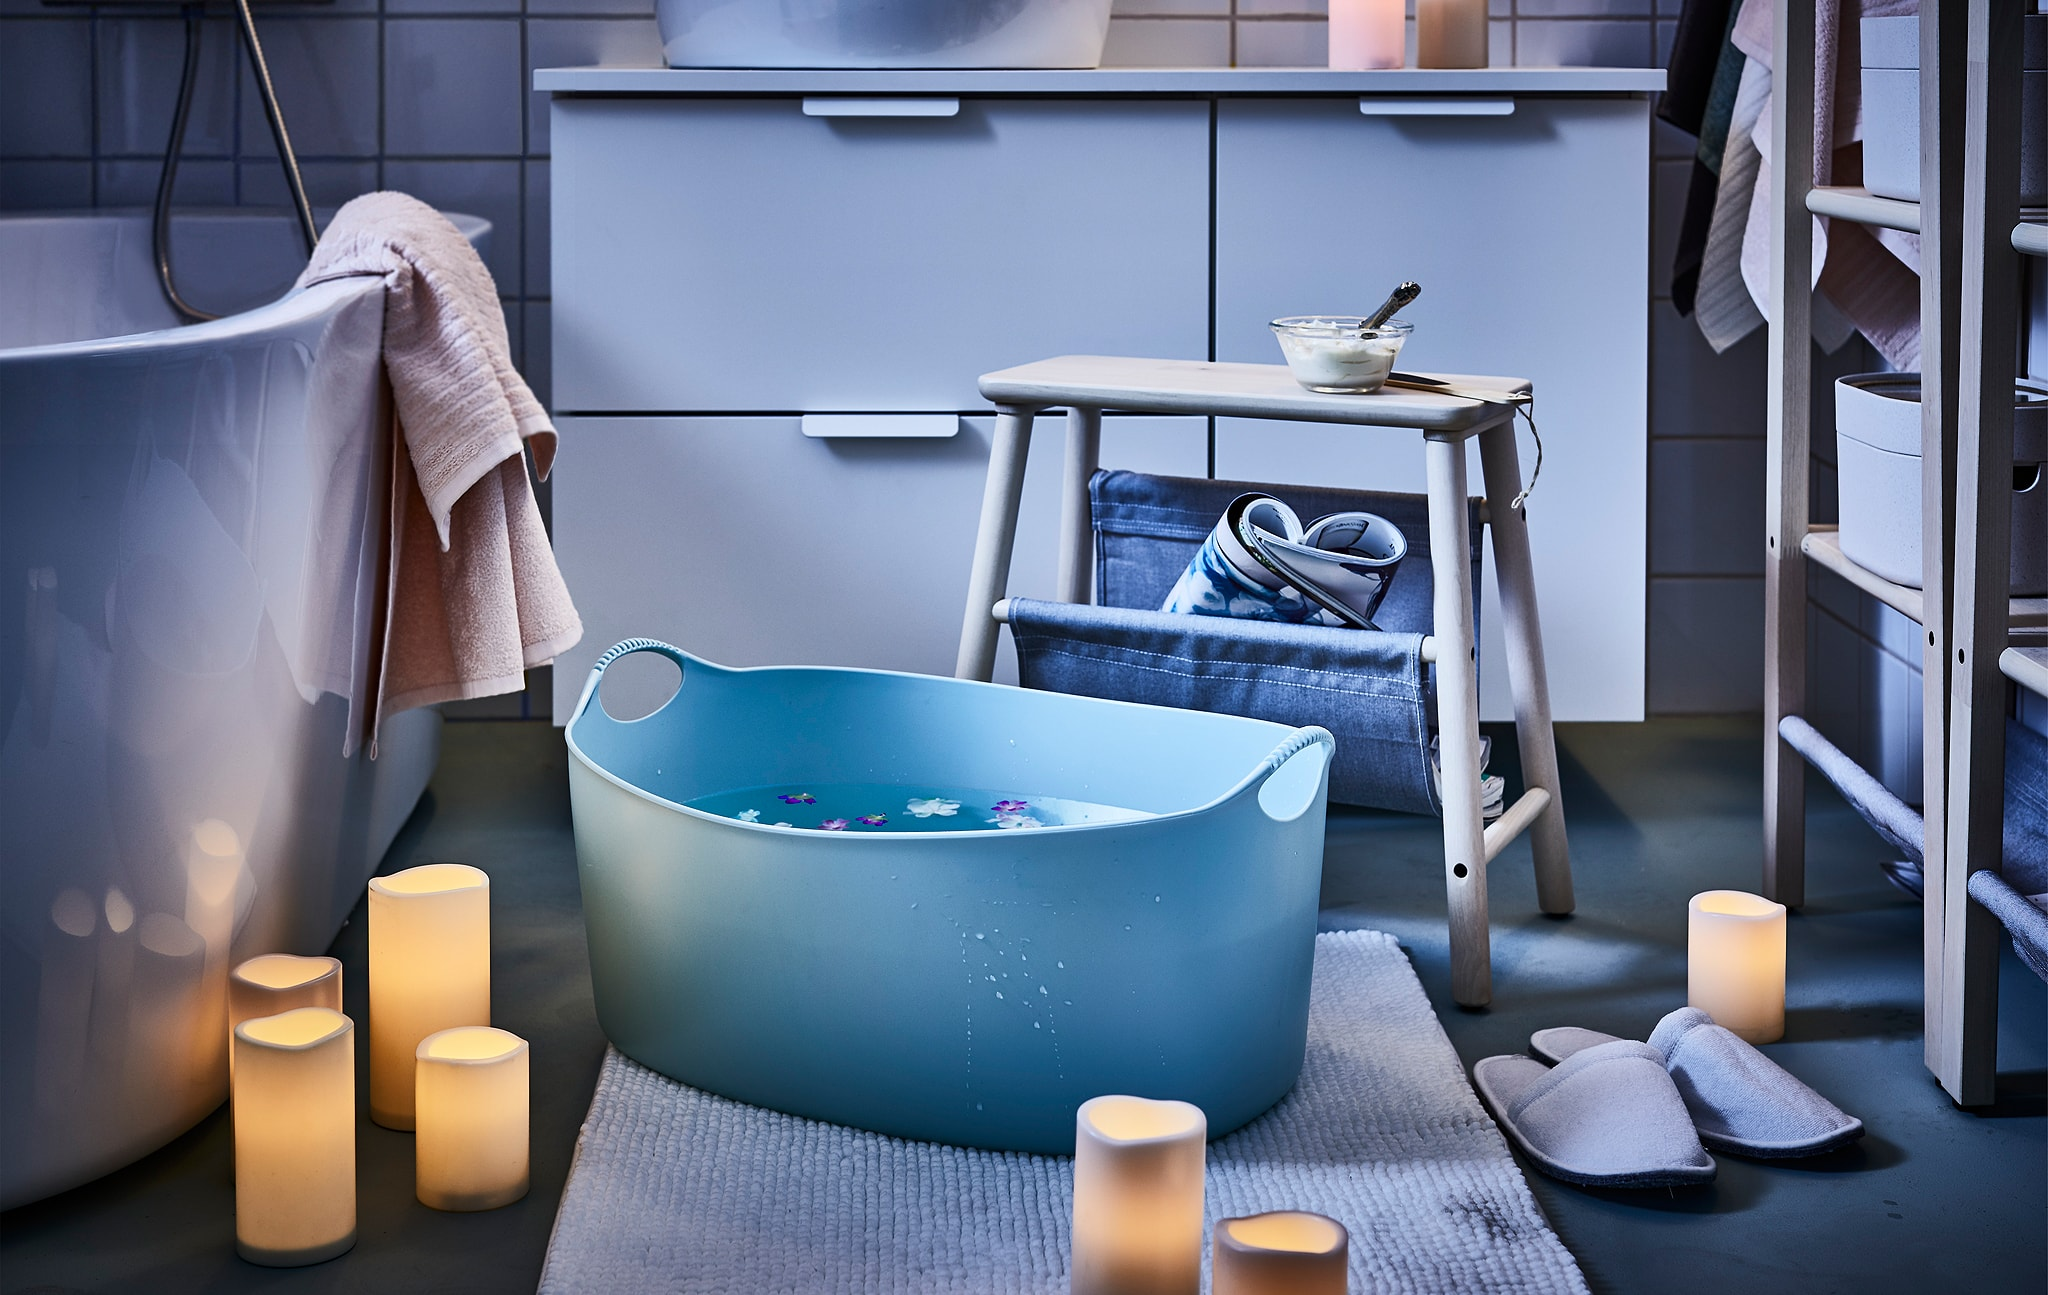 Bathroom mood-lit by scattered LED block candles; a stool placed next to a big footbath, flowers floating in it.